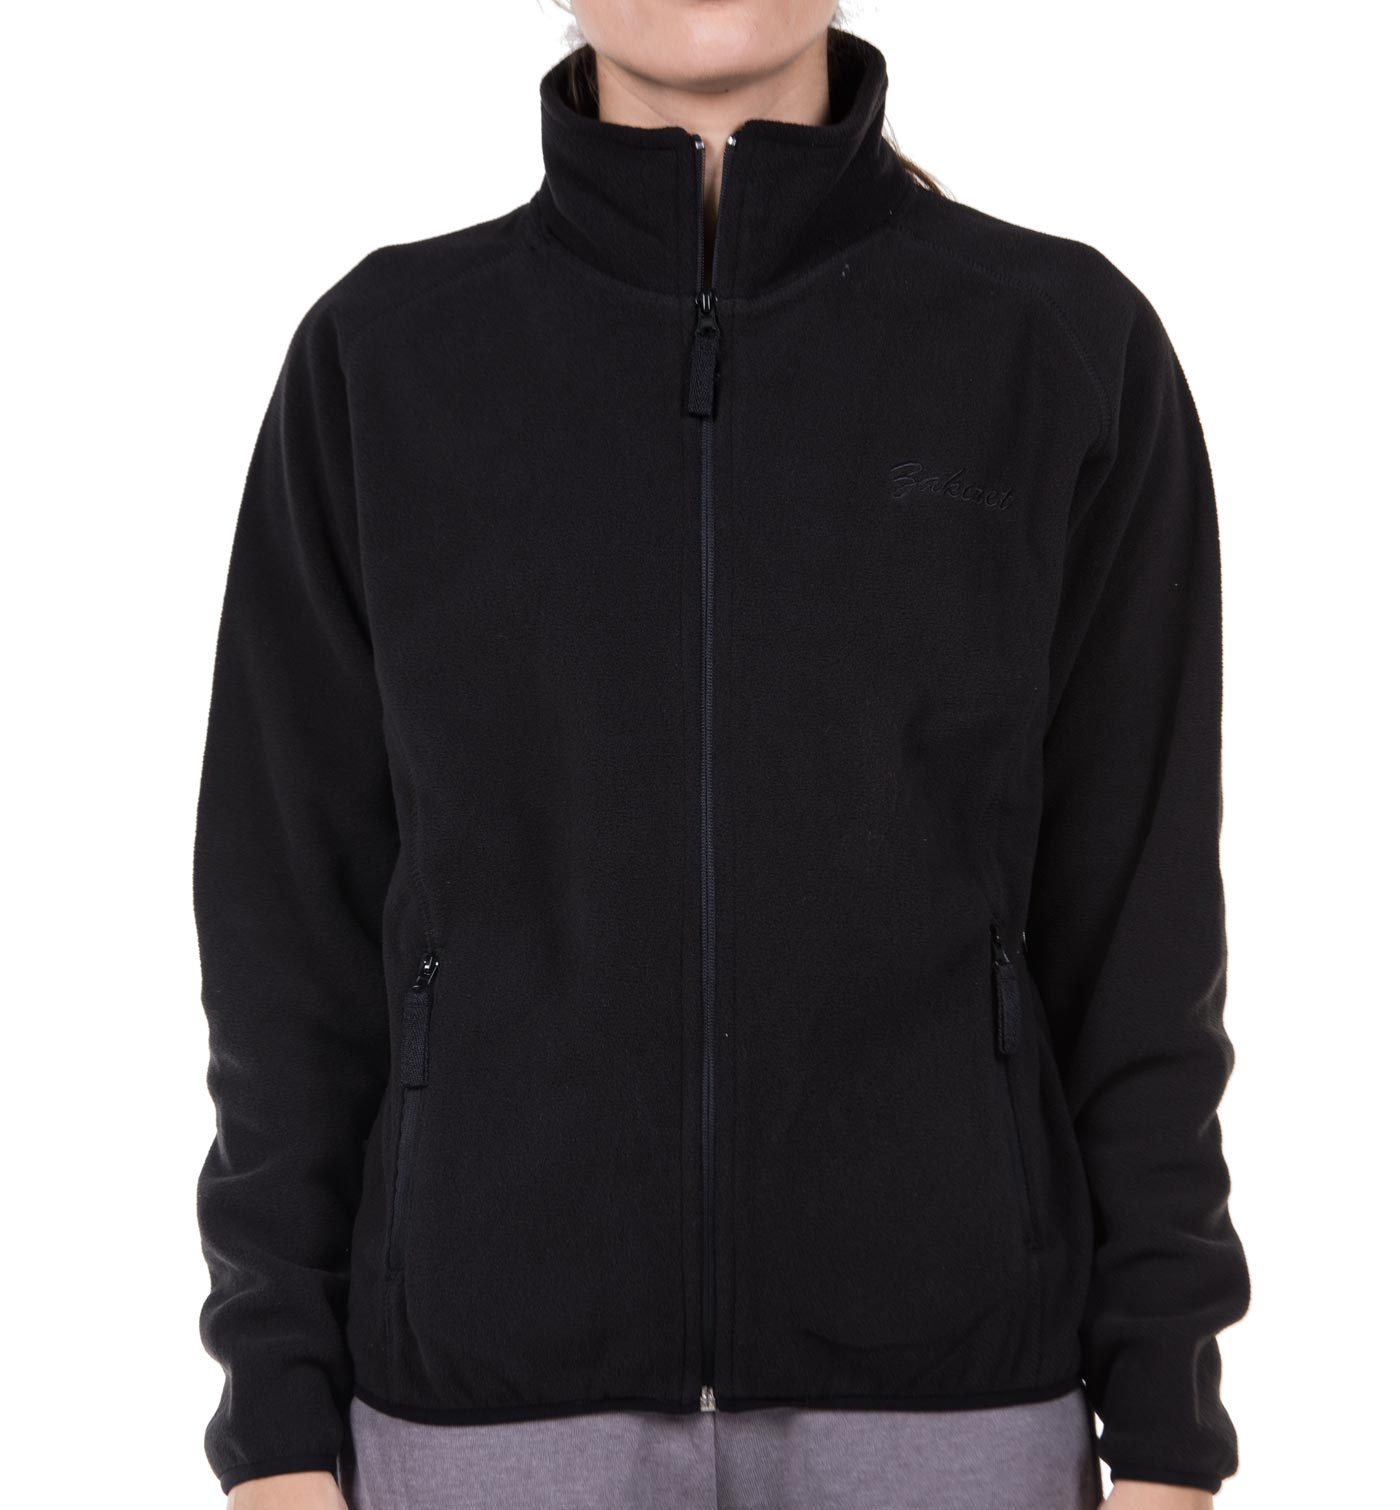 ZAKETA ZAKCRET LISA FLEECE 15-22200704 Μαύρο